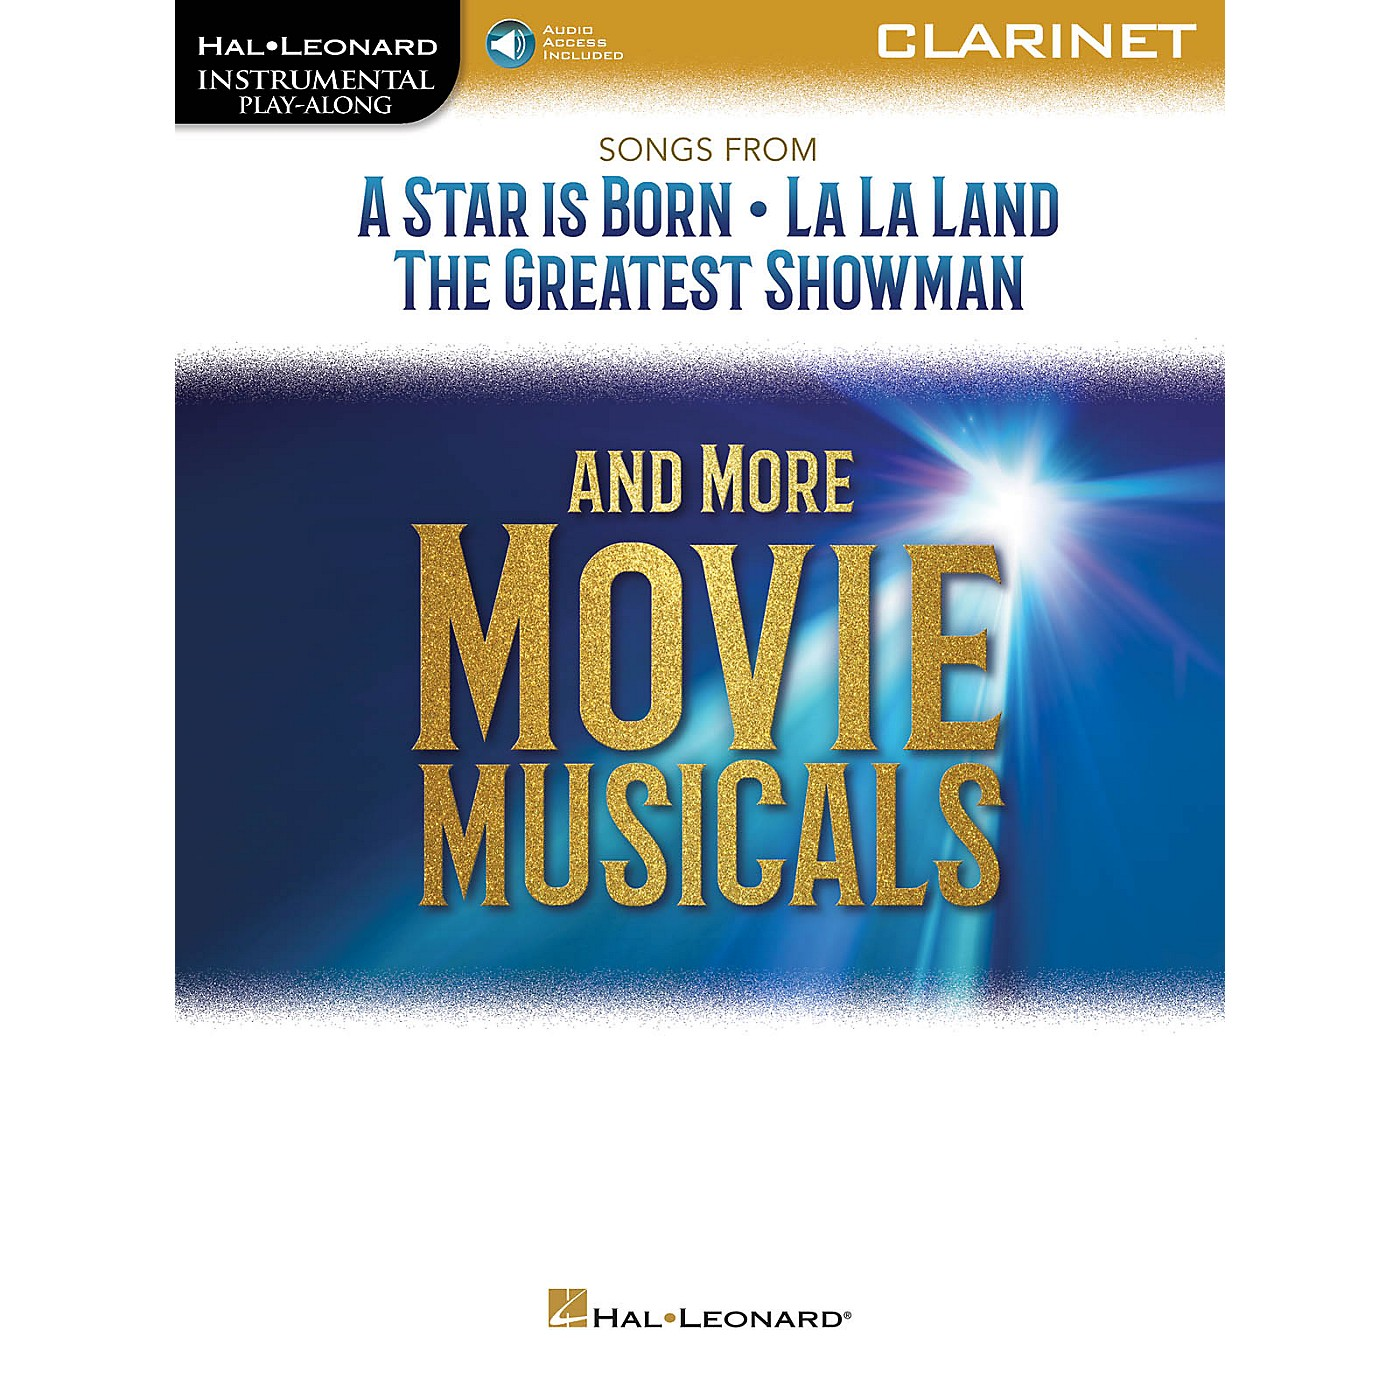 Hal Leonard Songs from A Star Is Born, La La Land and The Greatest Showman Instrumental Play-Along for Clarinet Book/Audio Online thumbnail